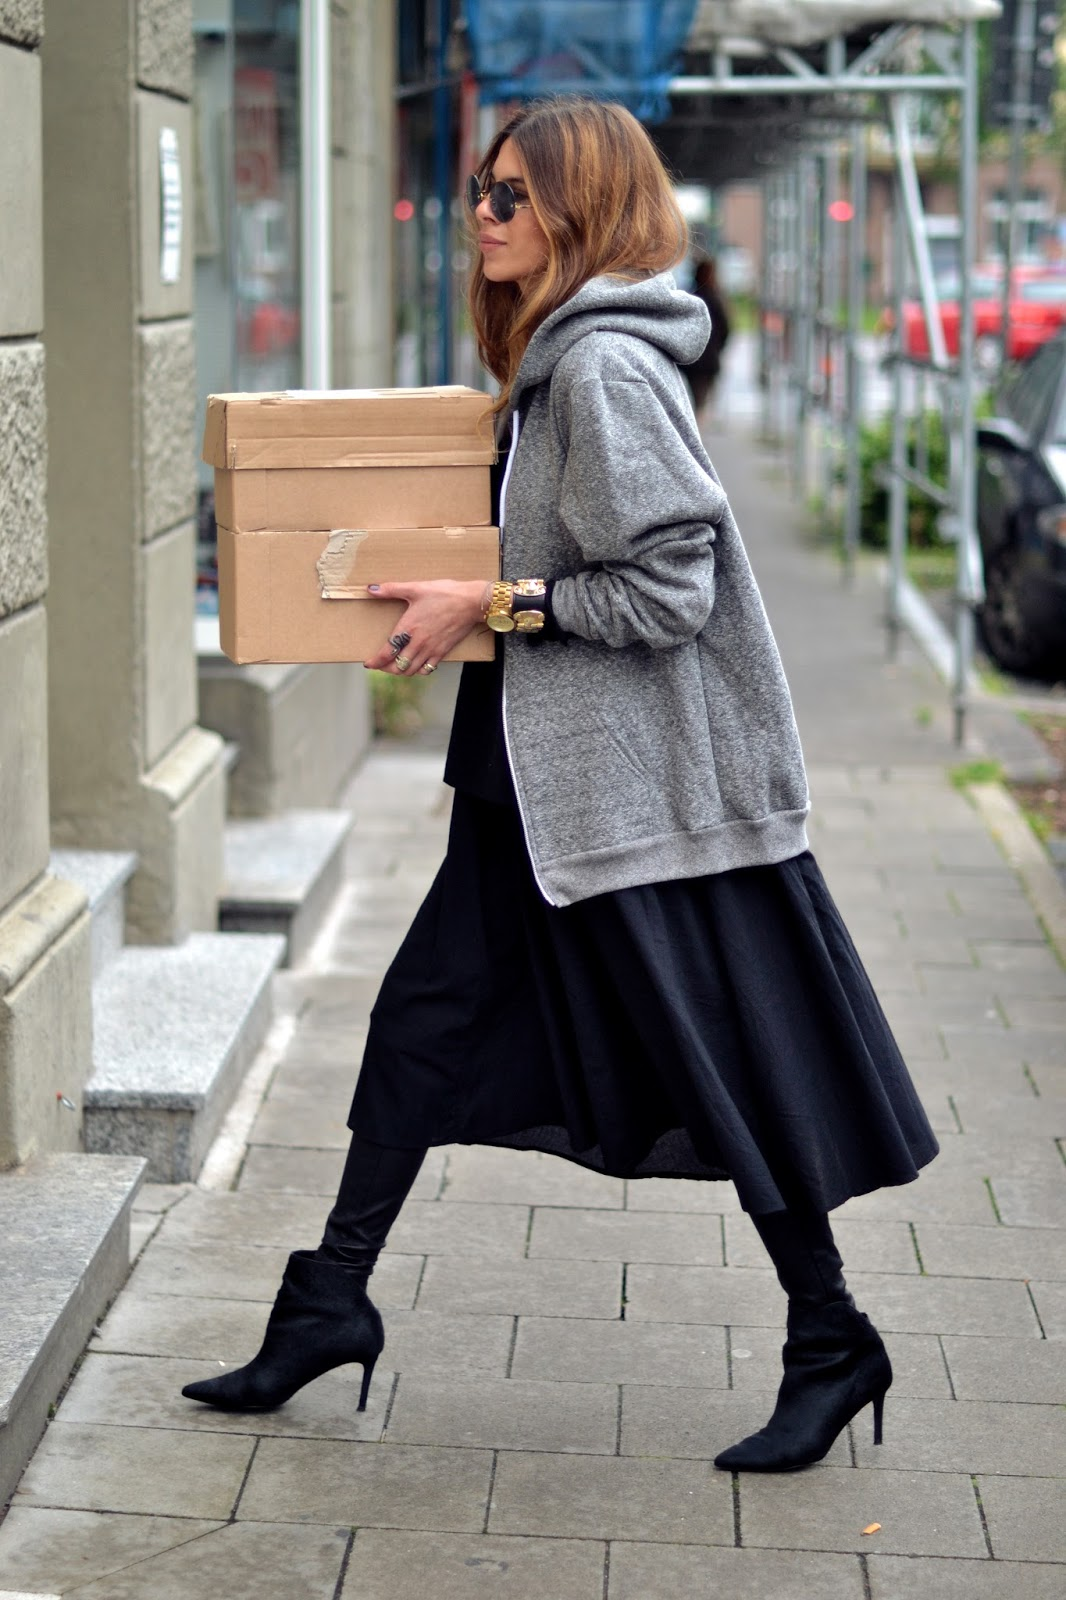 Maj Wyh Is Wearing Hoodie From Paul Richard By W Concept And The Dress Is Kowtow By W Concepy